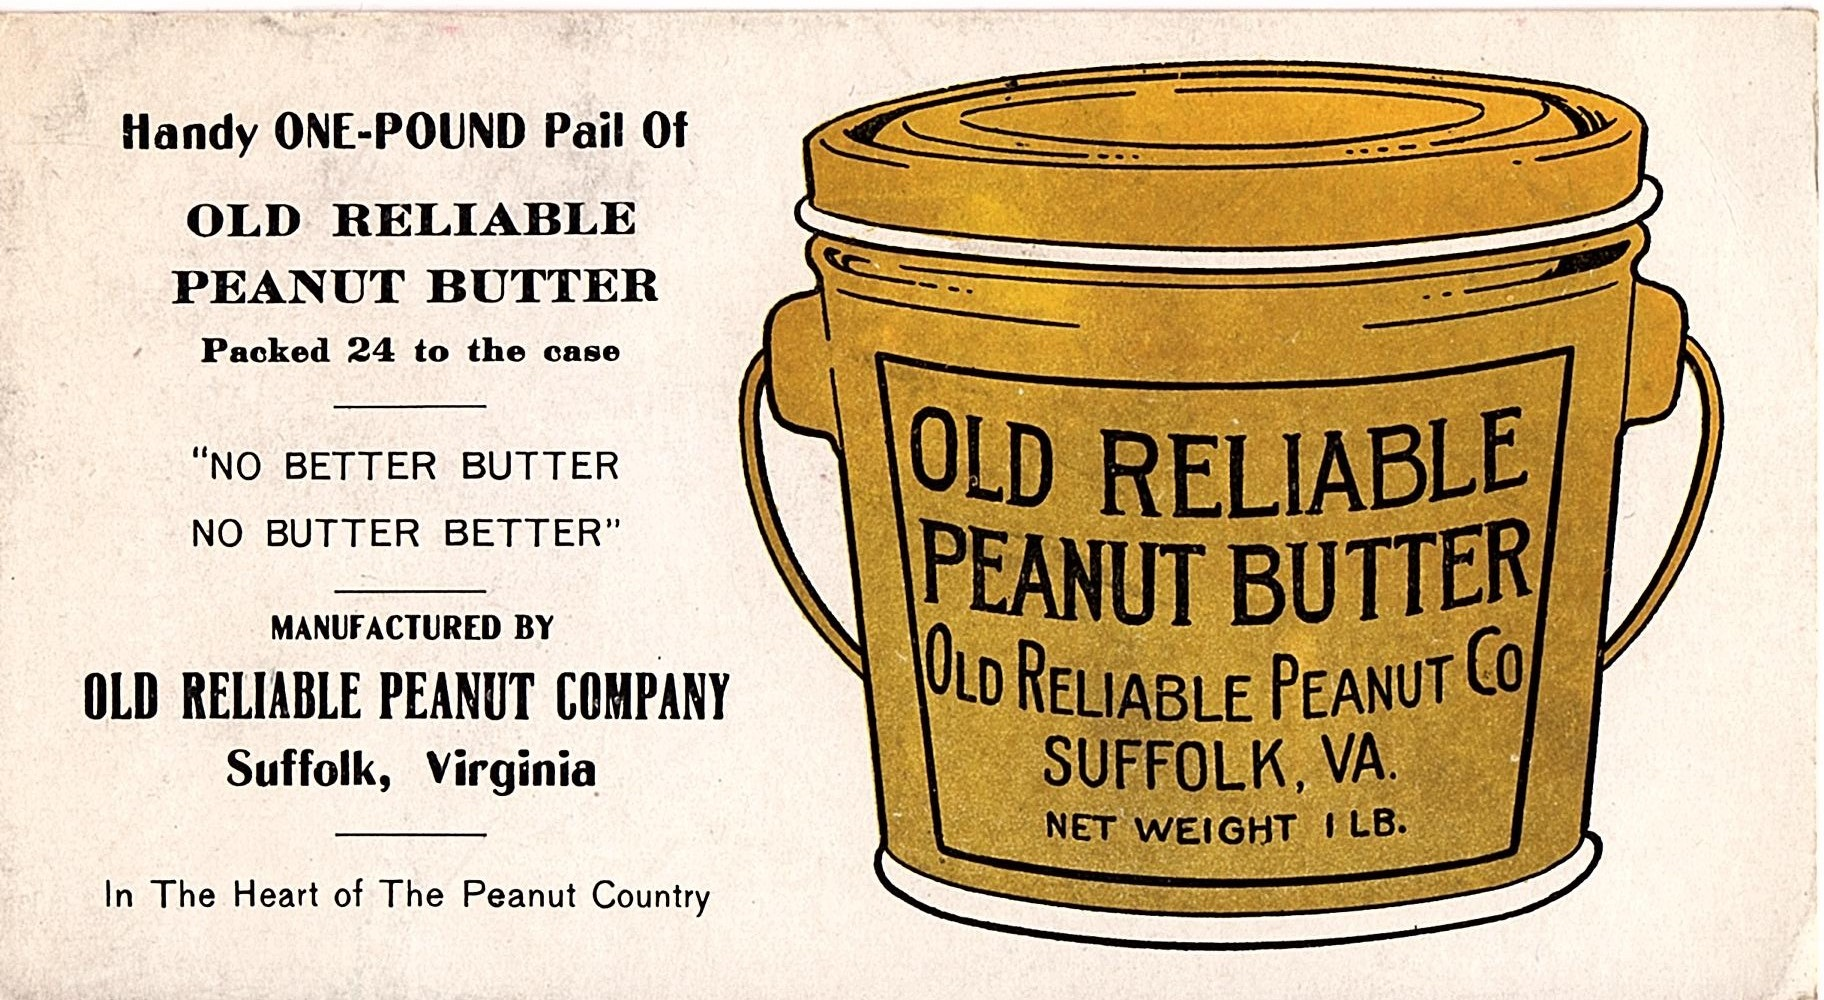 Old Reliable Peanut Butter